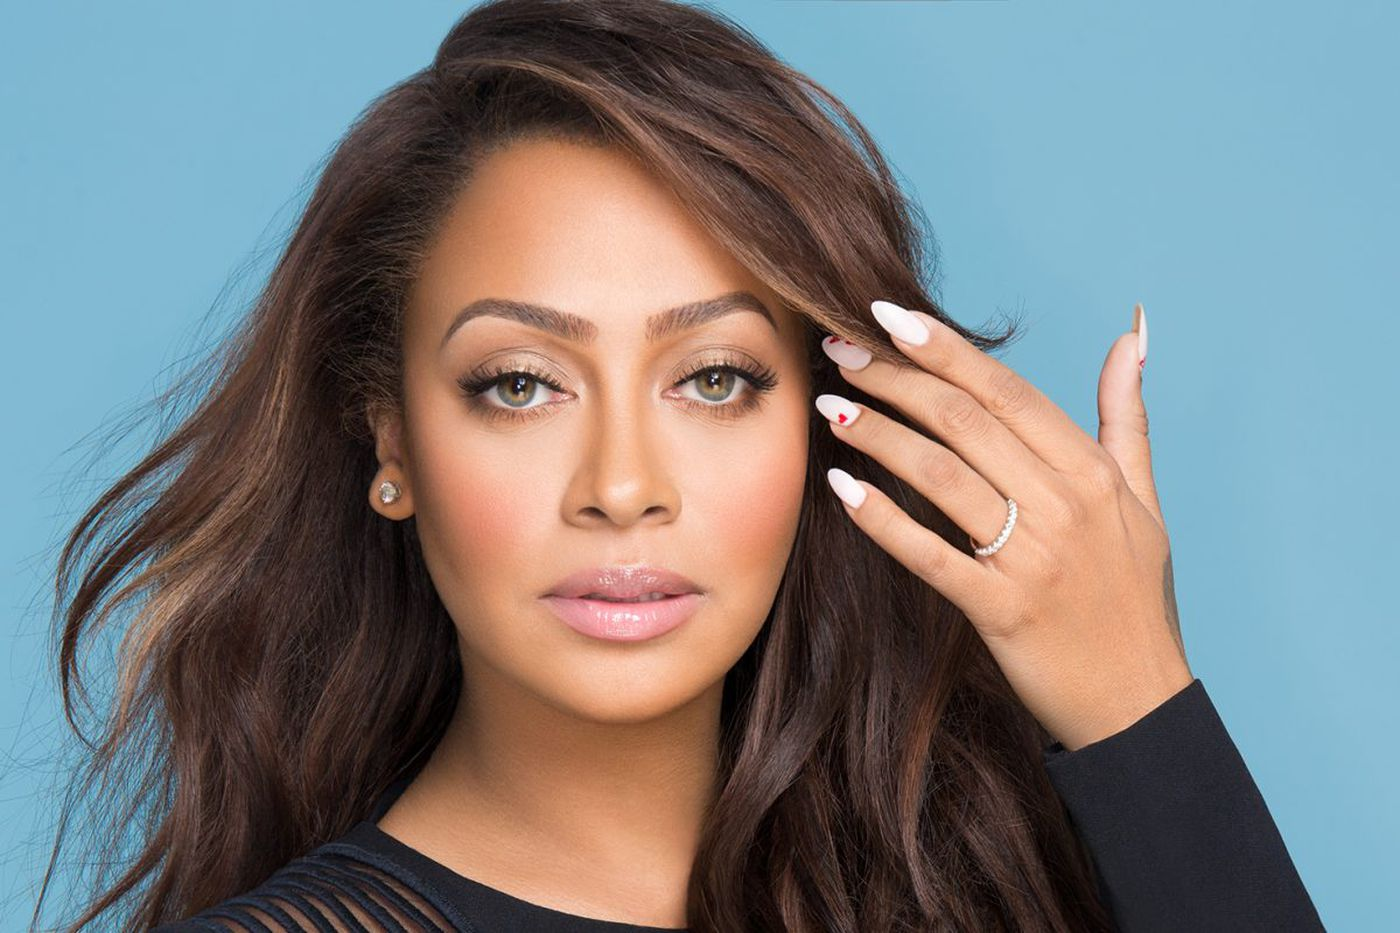 La La Anthony: 'My line takes women from day to play to slay'